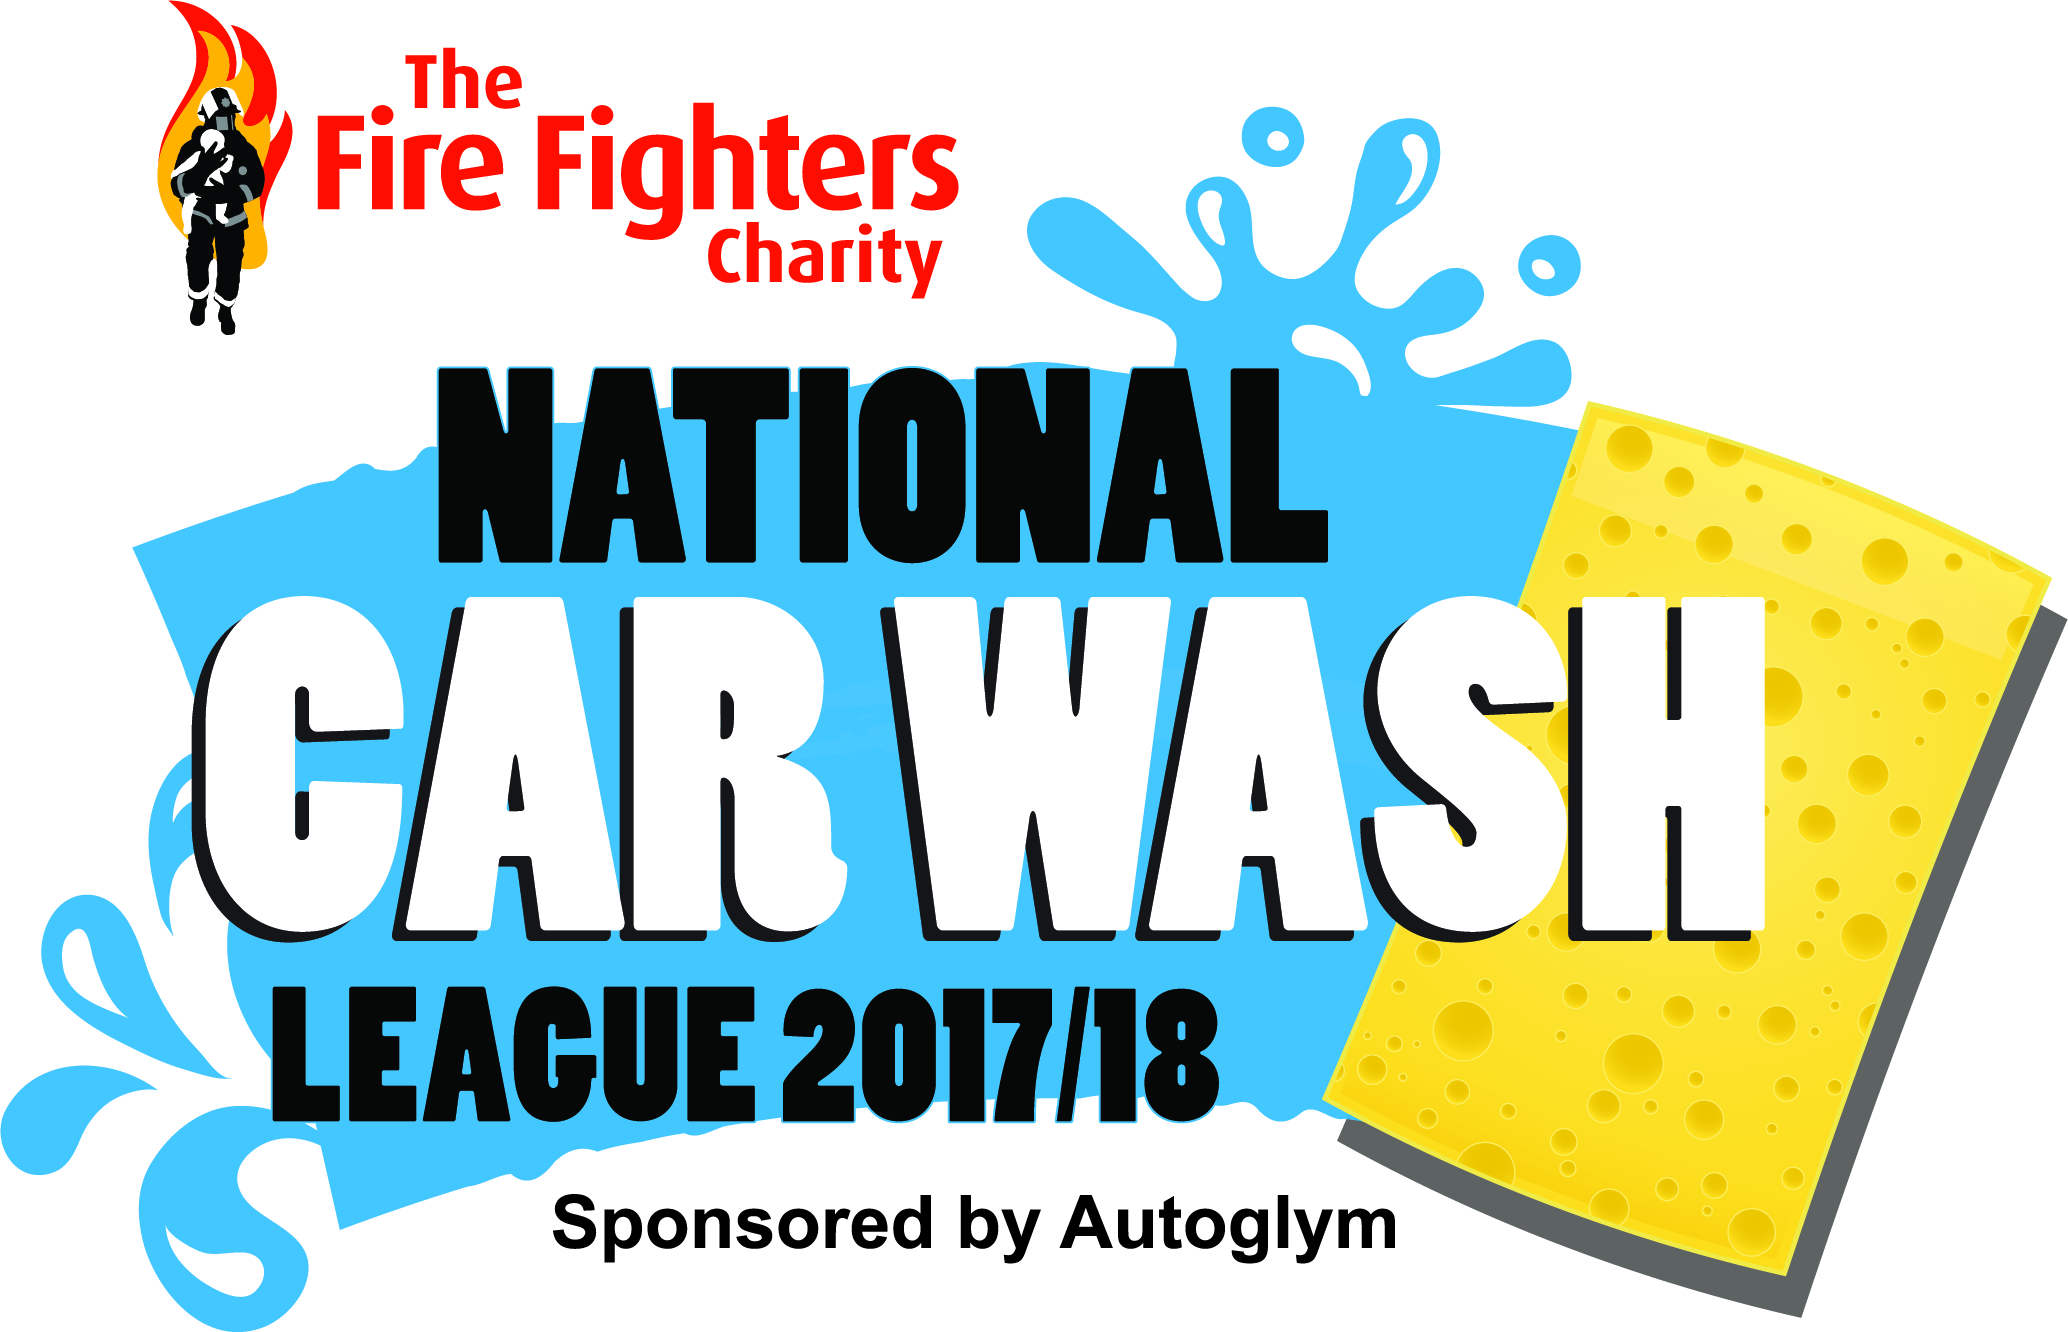 carwash-league-logo_17-18_autoglym